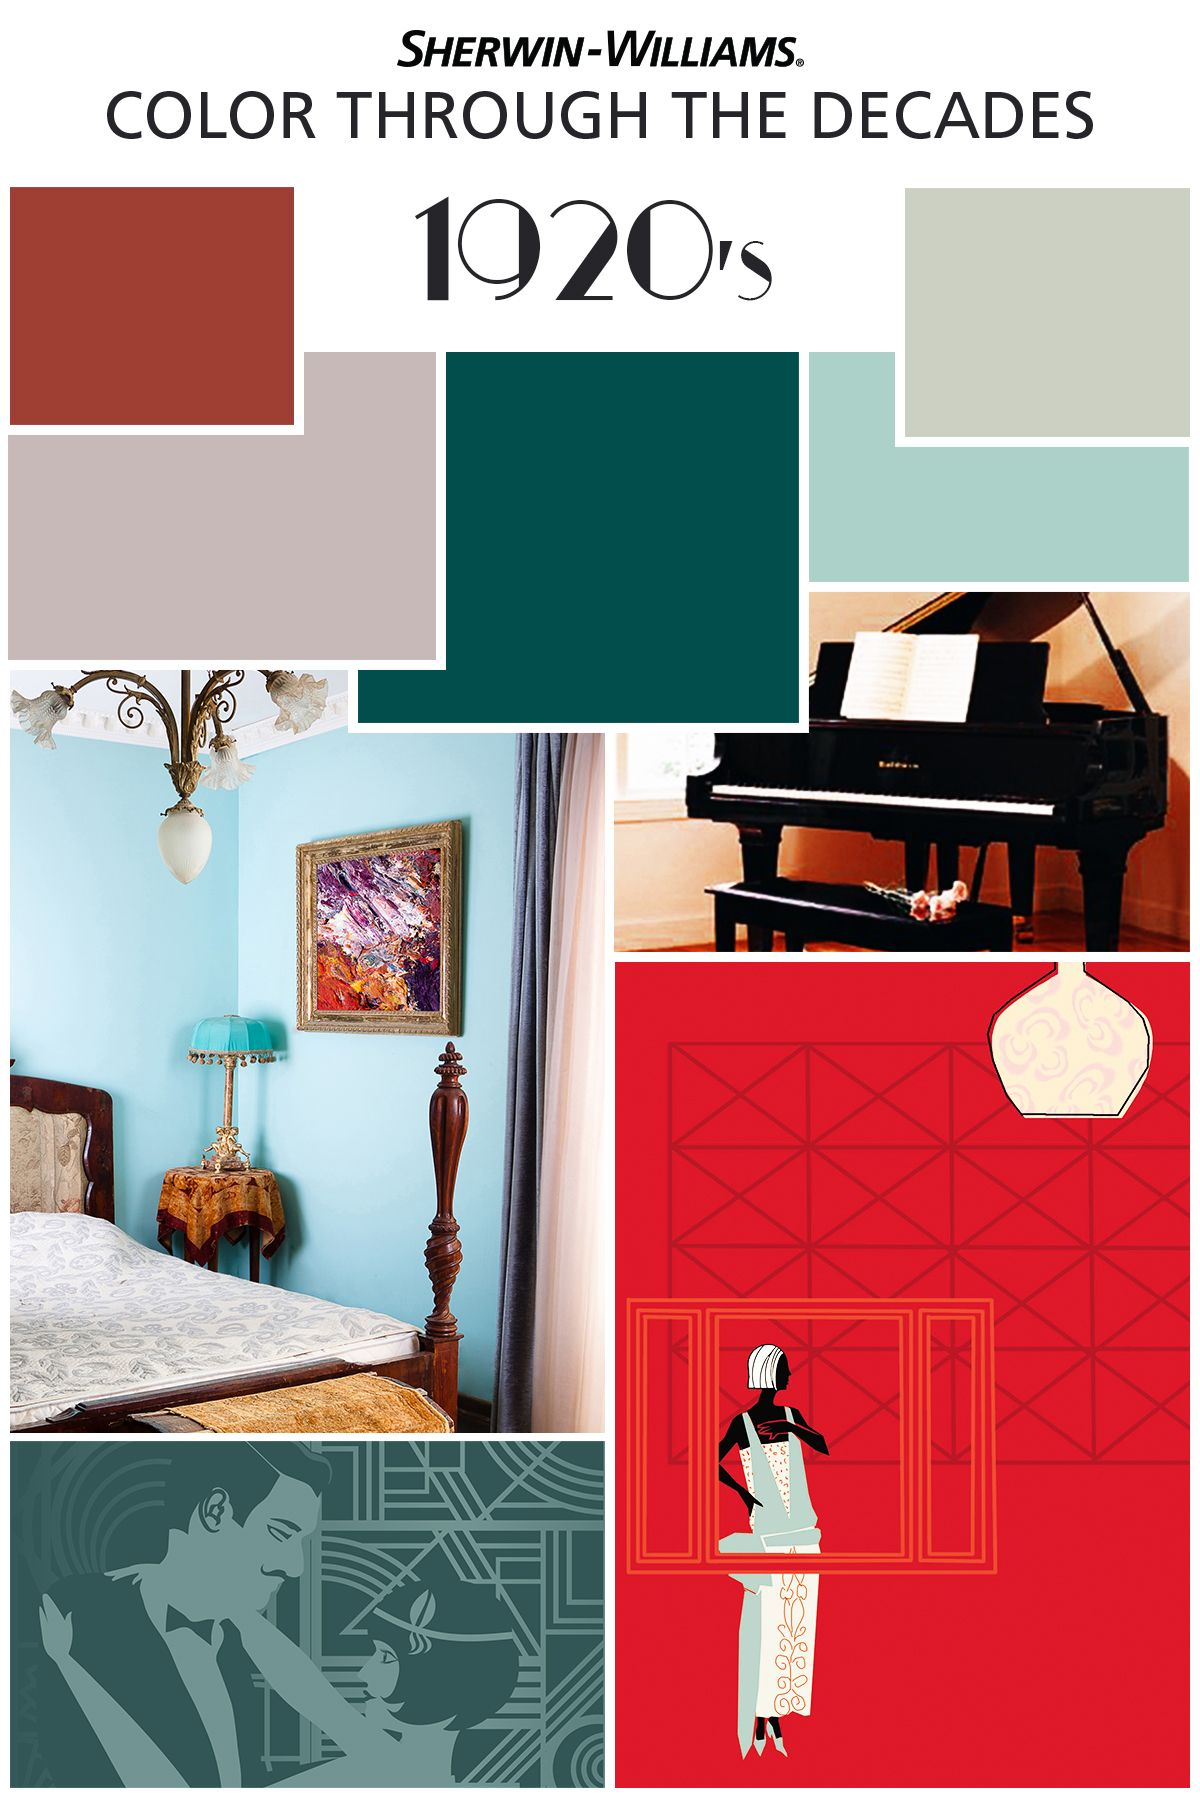 Folks Preferred To Jazz Up Their Style During The Age Of 1920s While Wall Colors Generally Stayed Neutral Accents And Decor Brought Drama